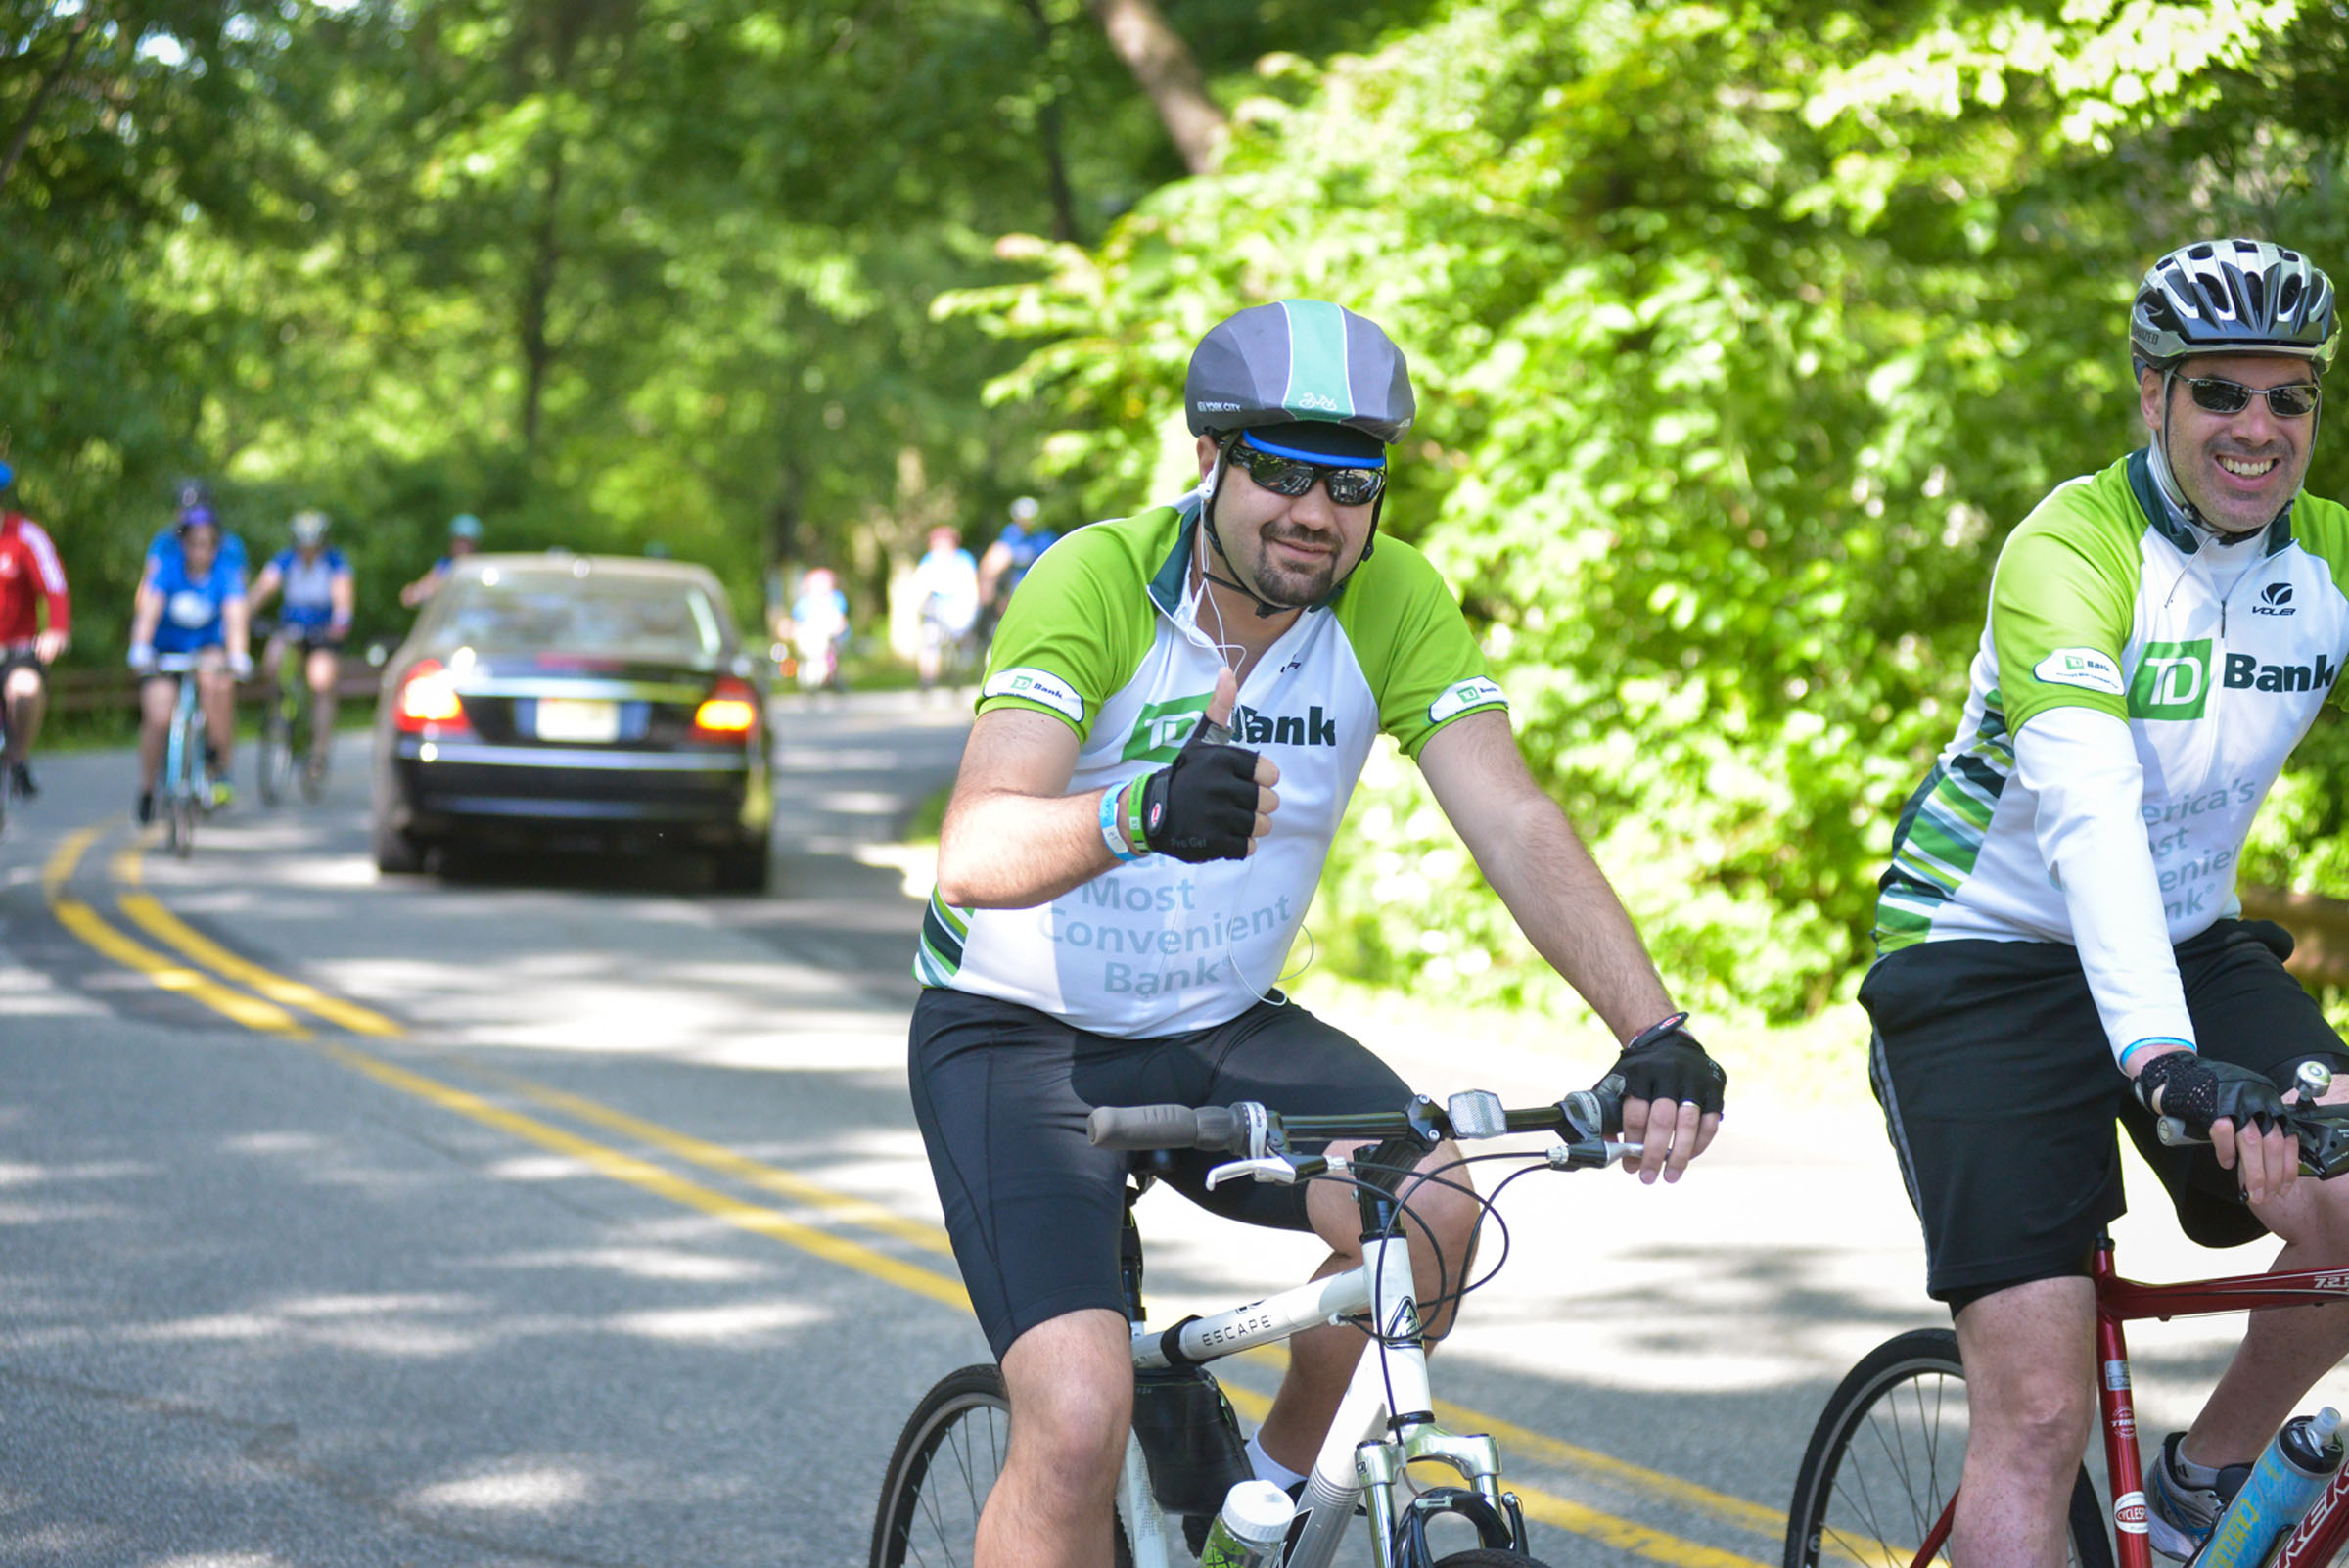 2017-06-04 GTD4A Charity Bike Ride - BCC - Paramus NJ-1979.jpg